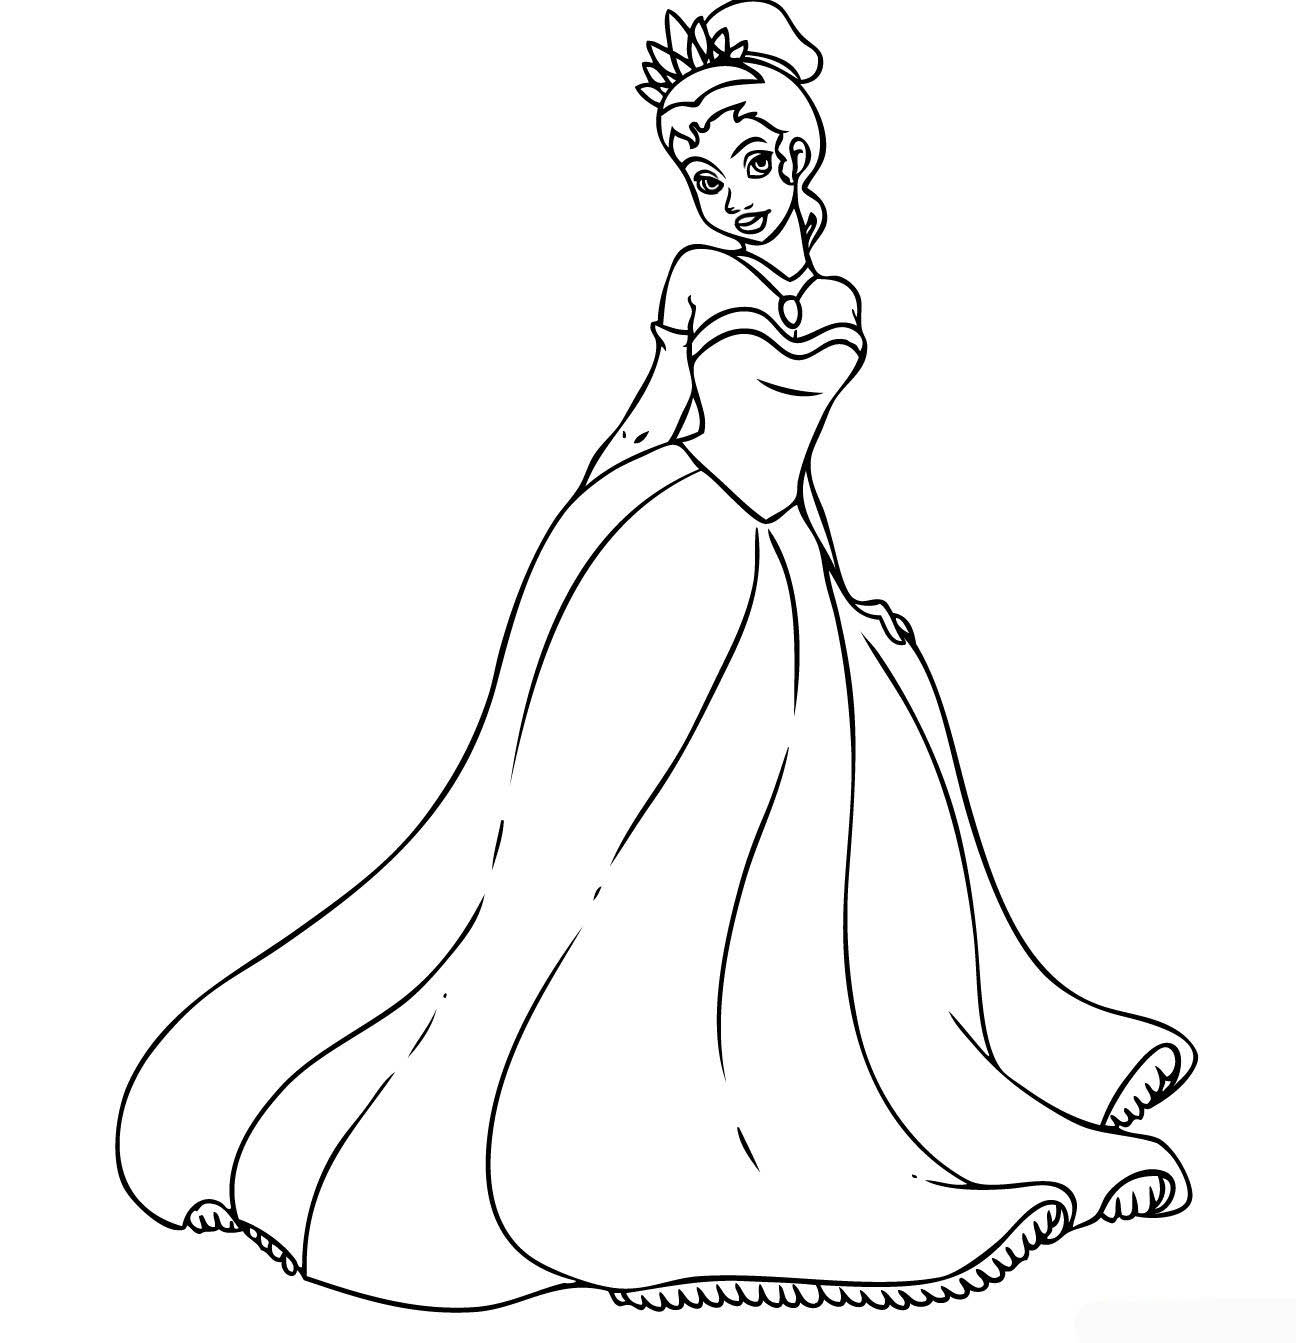 Princess Coloring Frozen Free Pinterest Princess Frozen Princess Pictures To Color Printable